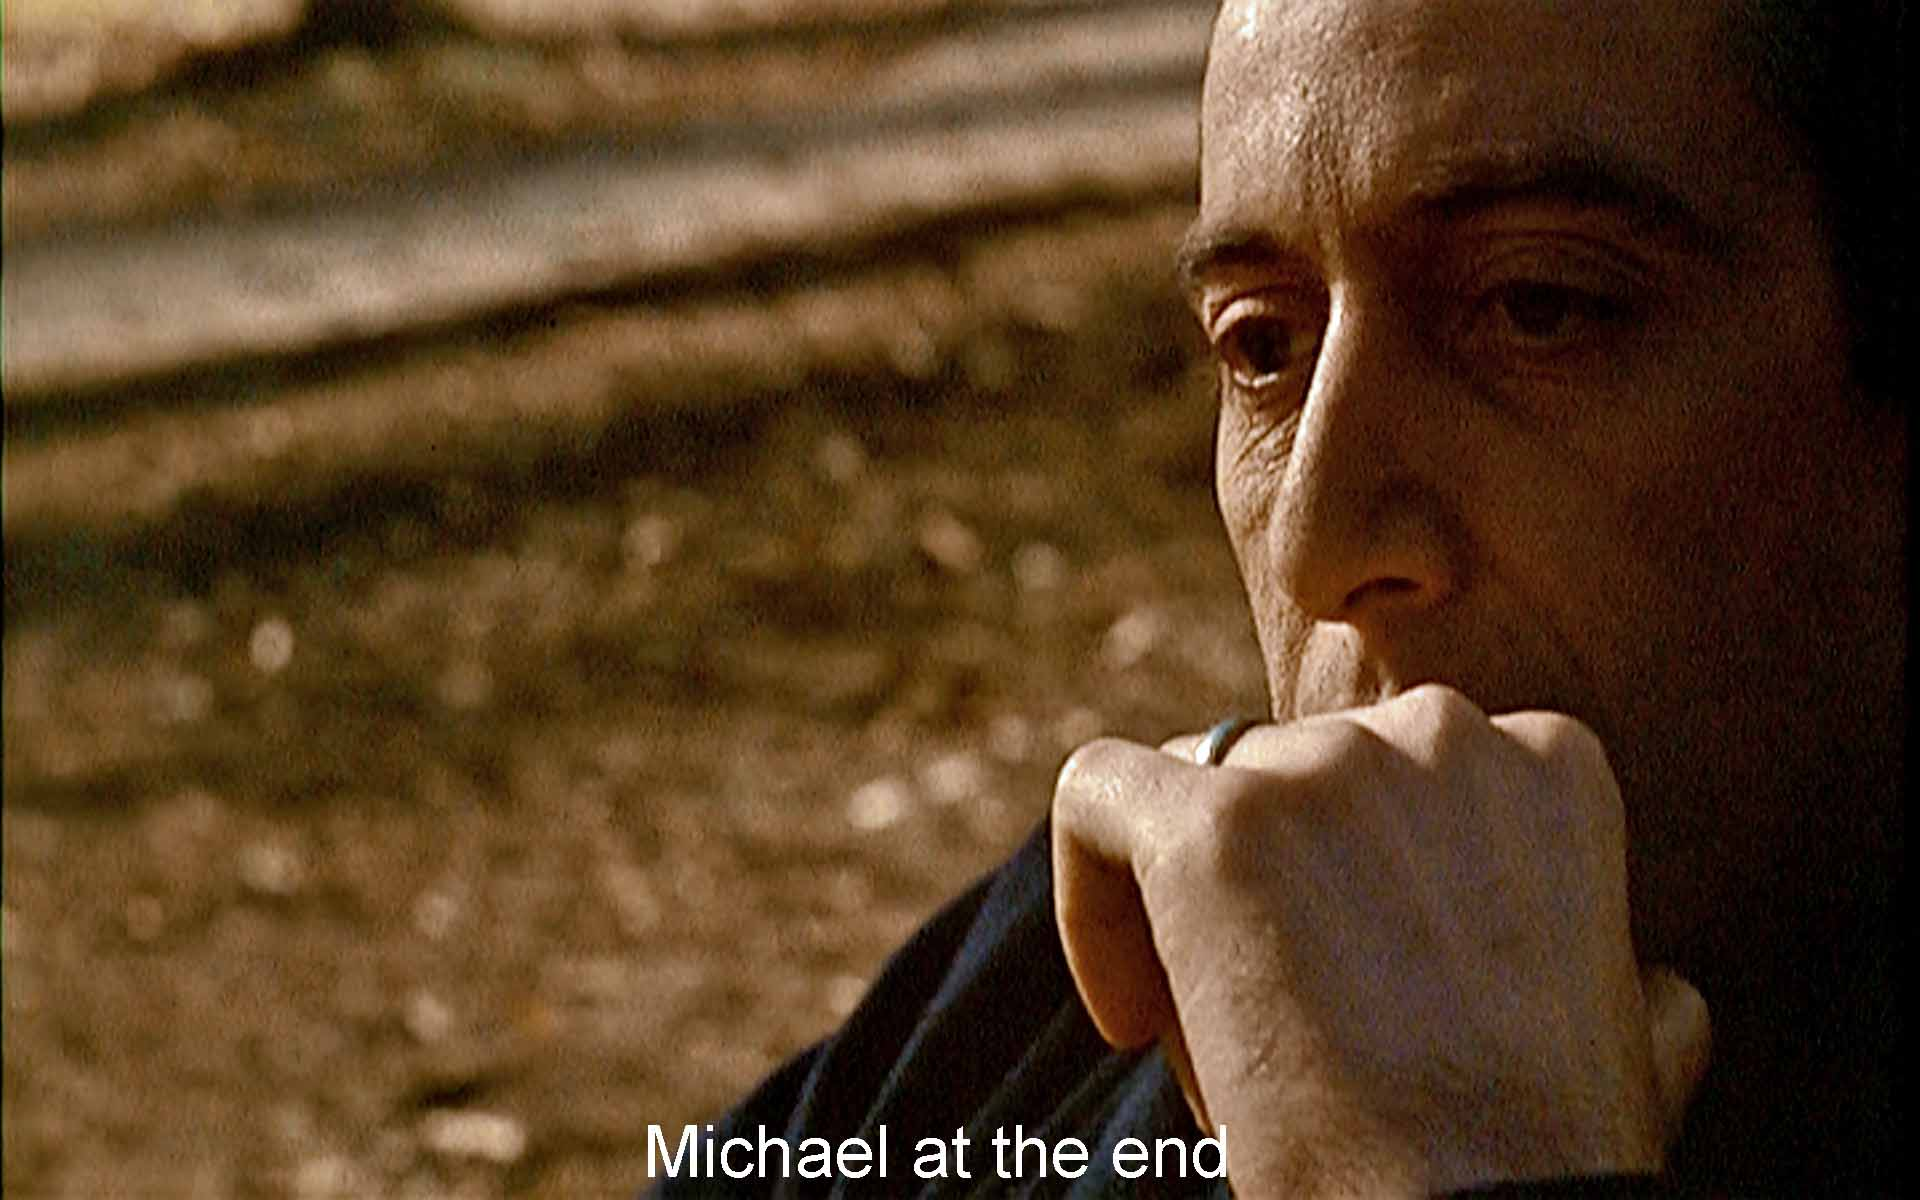 Michael at the end